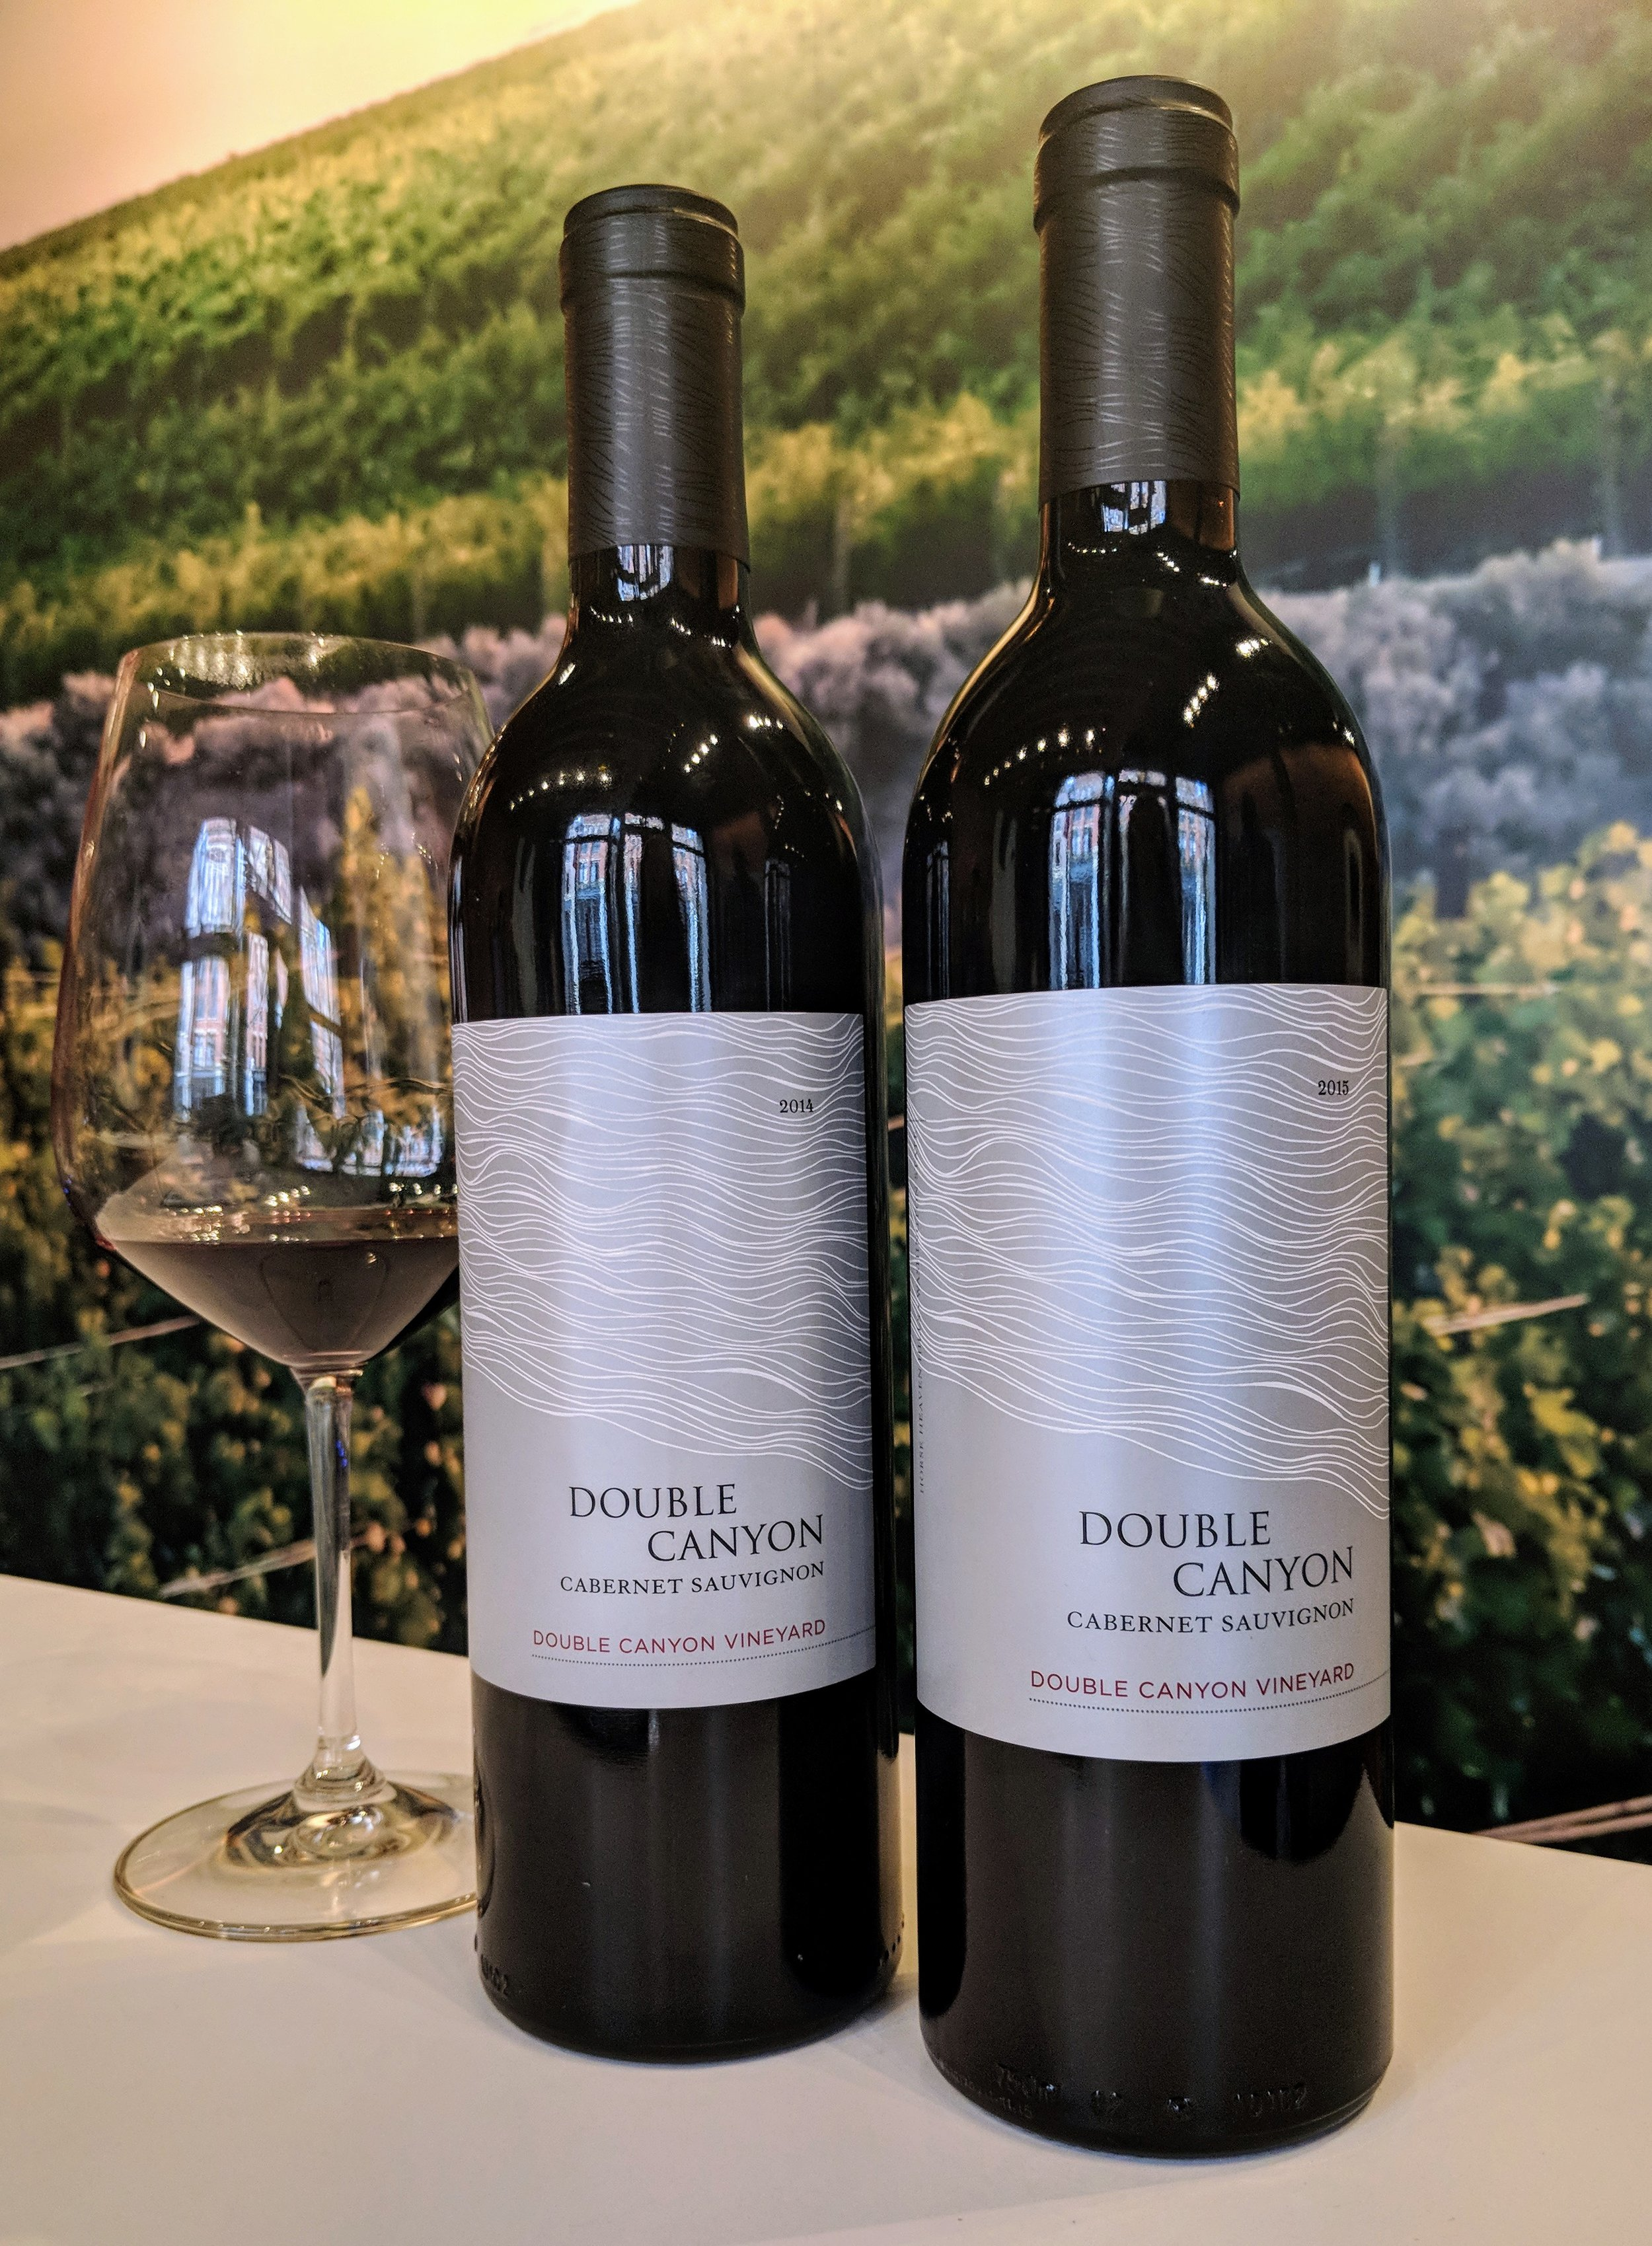 Double Canyon vineyards located in Horse Heaven Hills